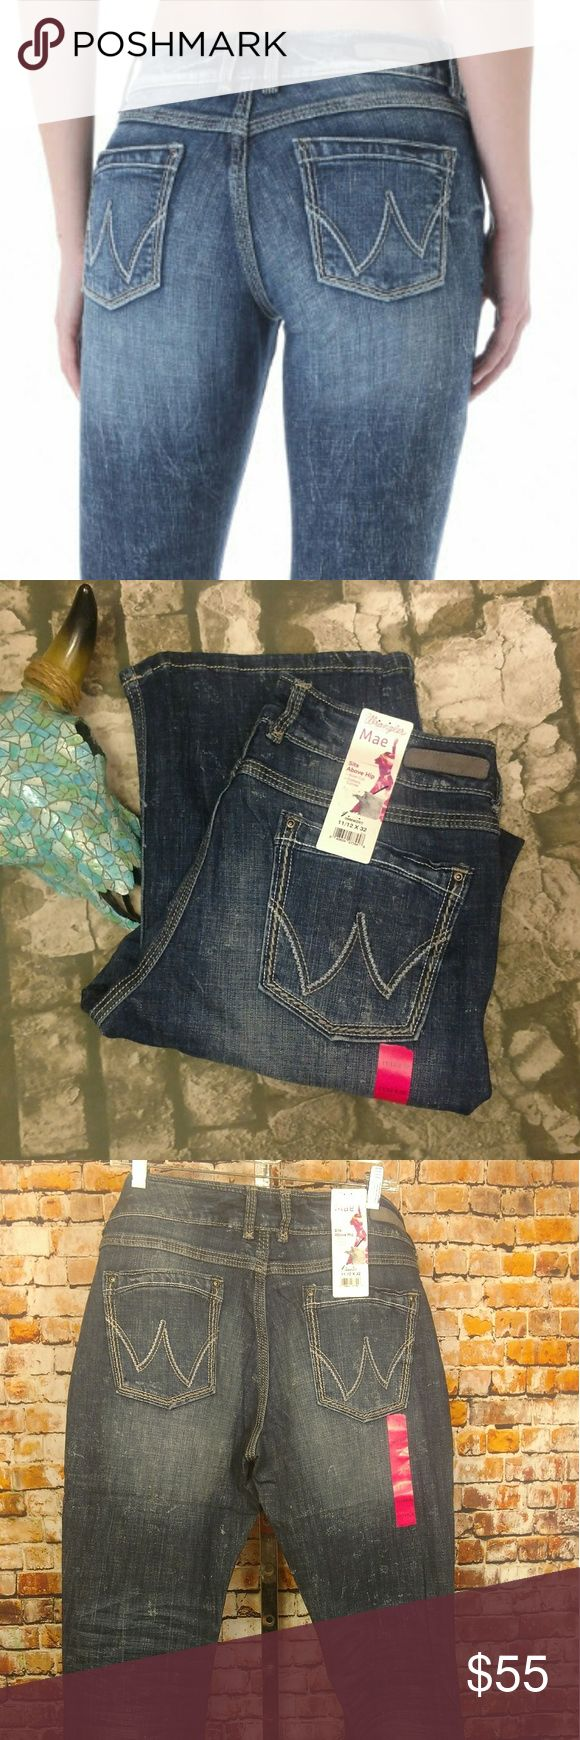 NWT Wrangler Mae Bootcut Jeans 11/12 X 32 Ladies Wrangler premium patch a fit,  bootcut jeans. style # 09 MWZRT. Sits above hip, Slimmer fit through thigh and butt, mid-rise, bootcut. Stonewash makes every pair of these jeans uniquely different. 64% cotton 19% rayon 16% polyester 1% spandex. Dark stonewash. Photos are representative of all sizes available. 11/12 X 32 Wrangler Jeans Boot Cut